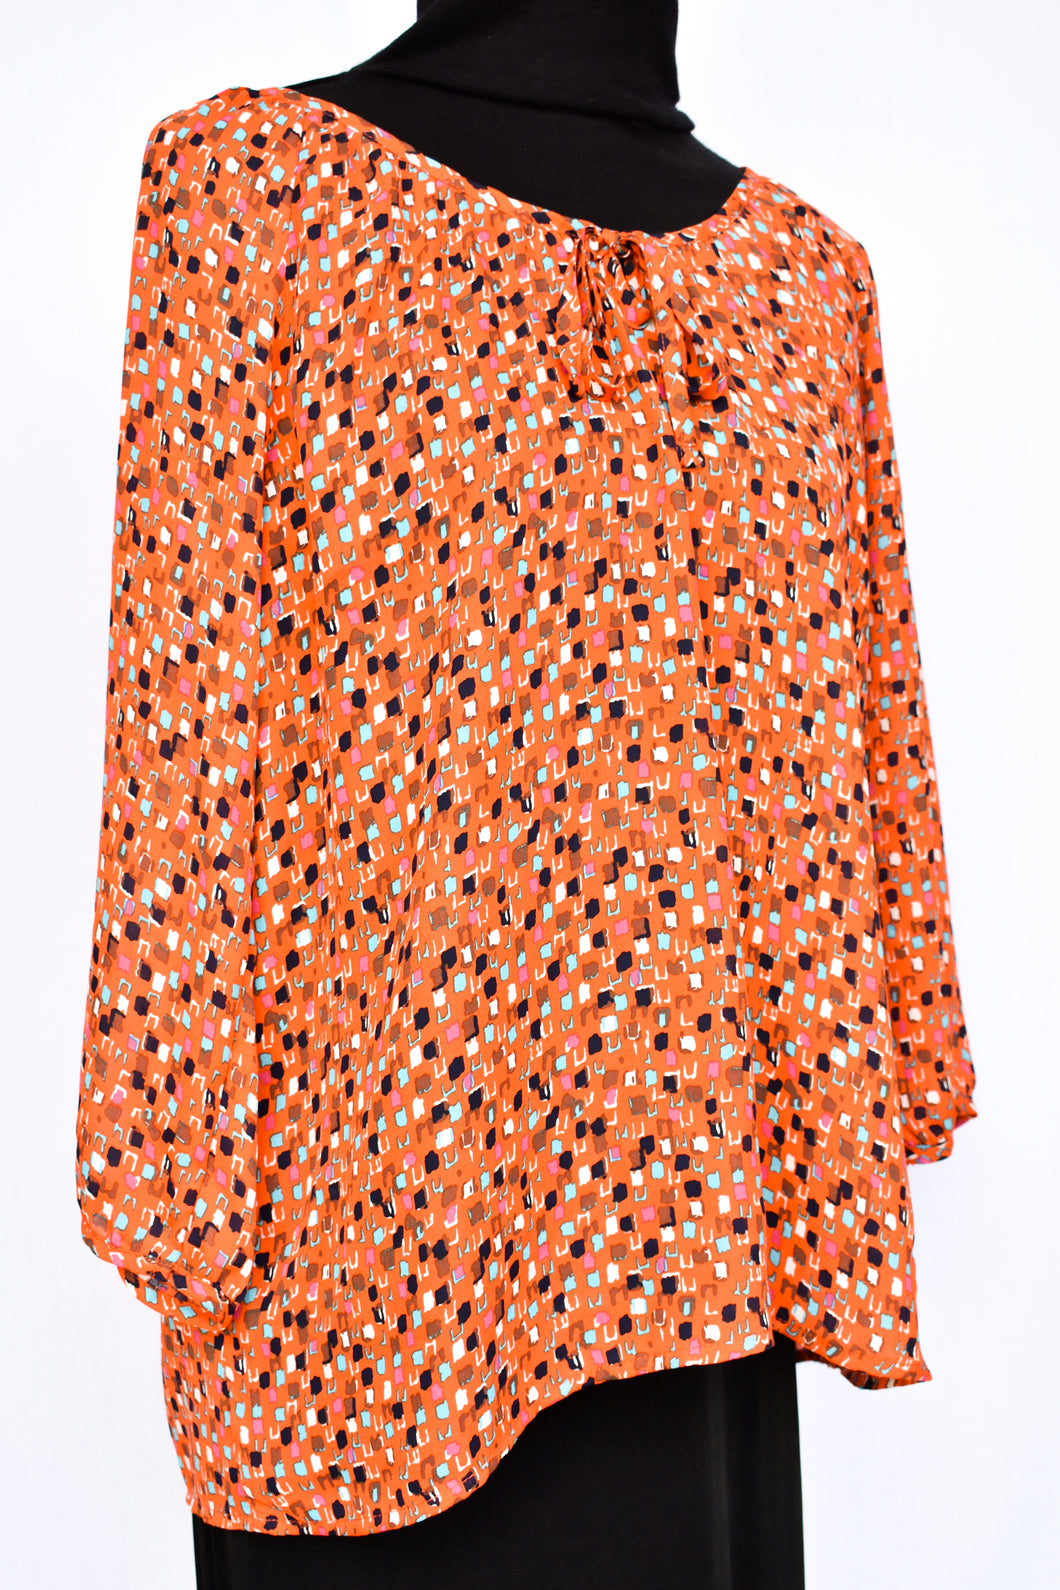 Orange patterned top, size 12